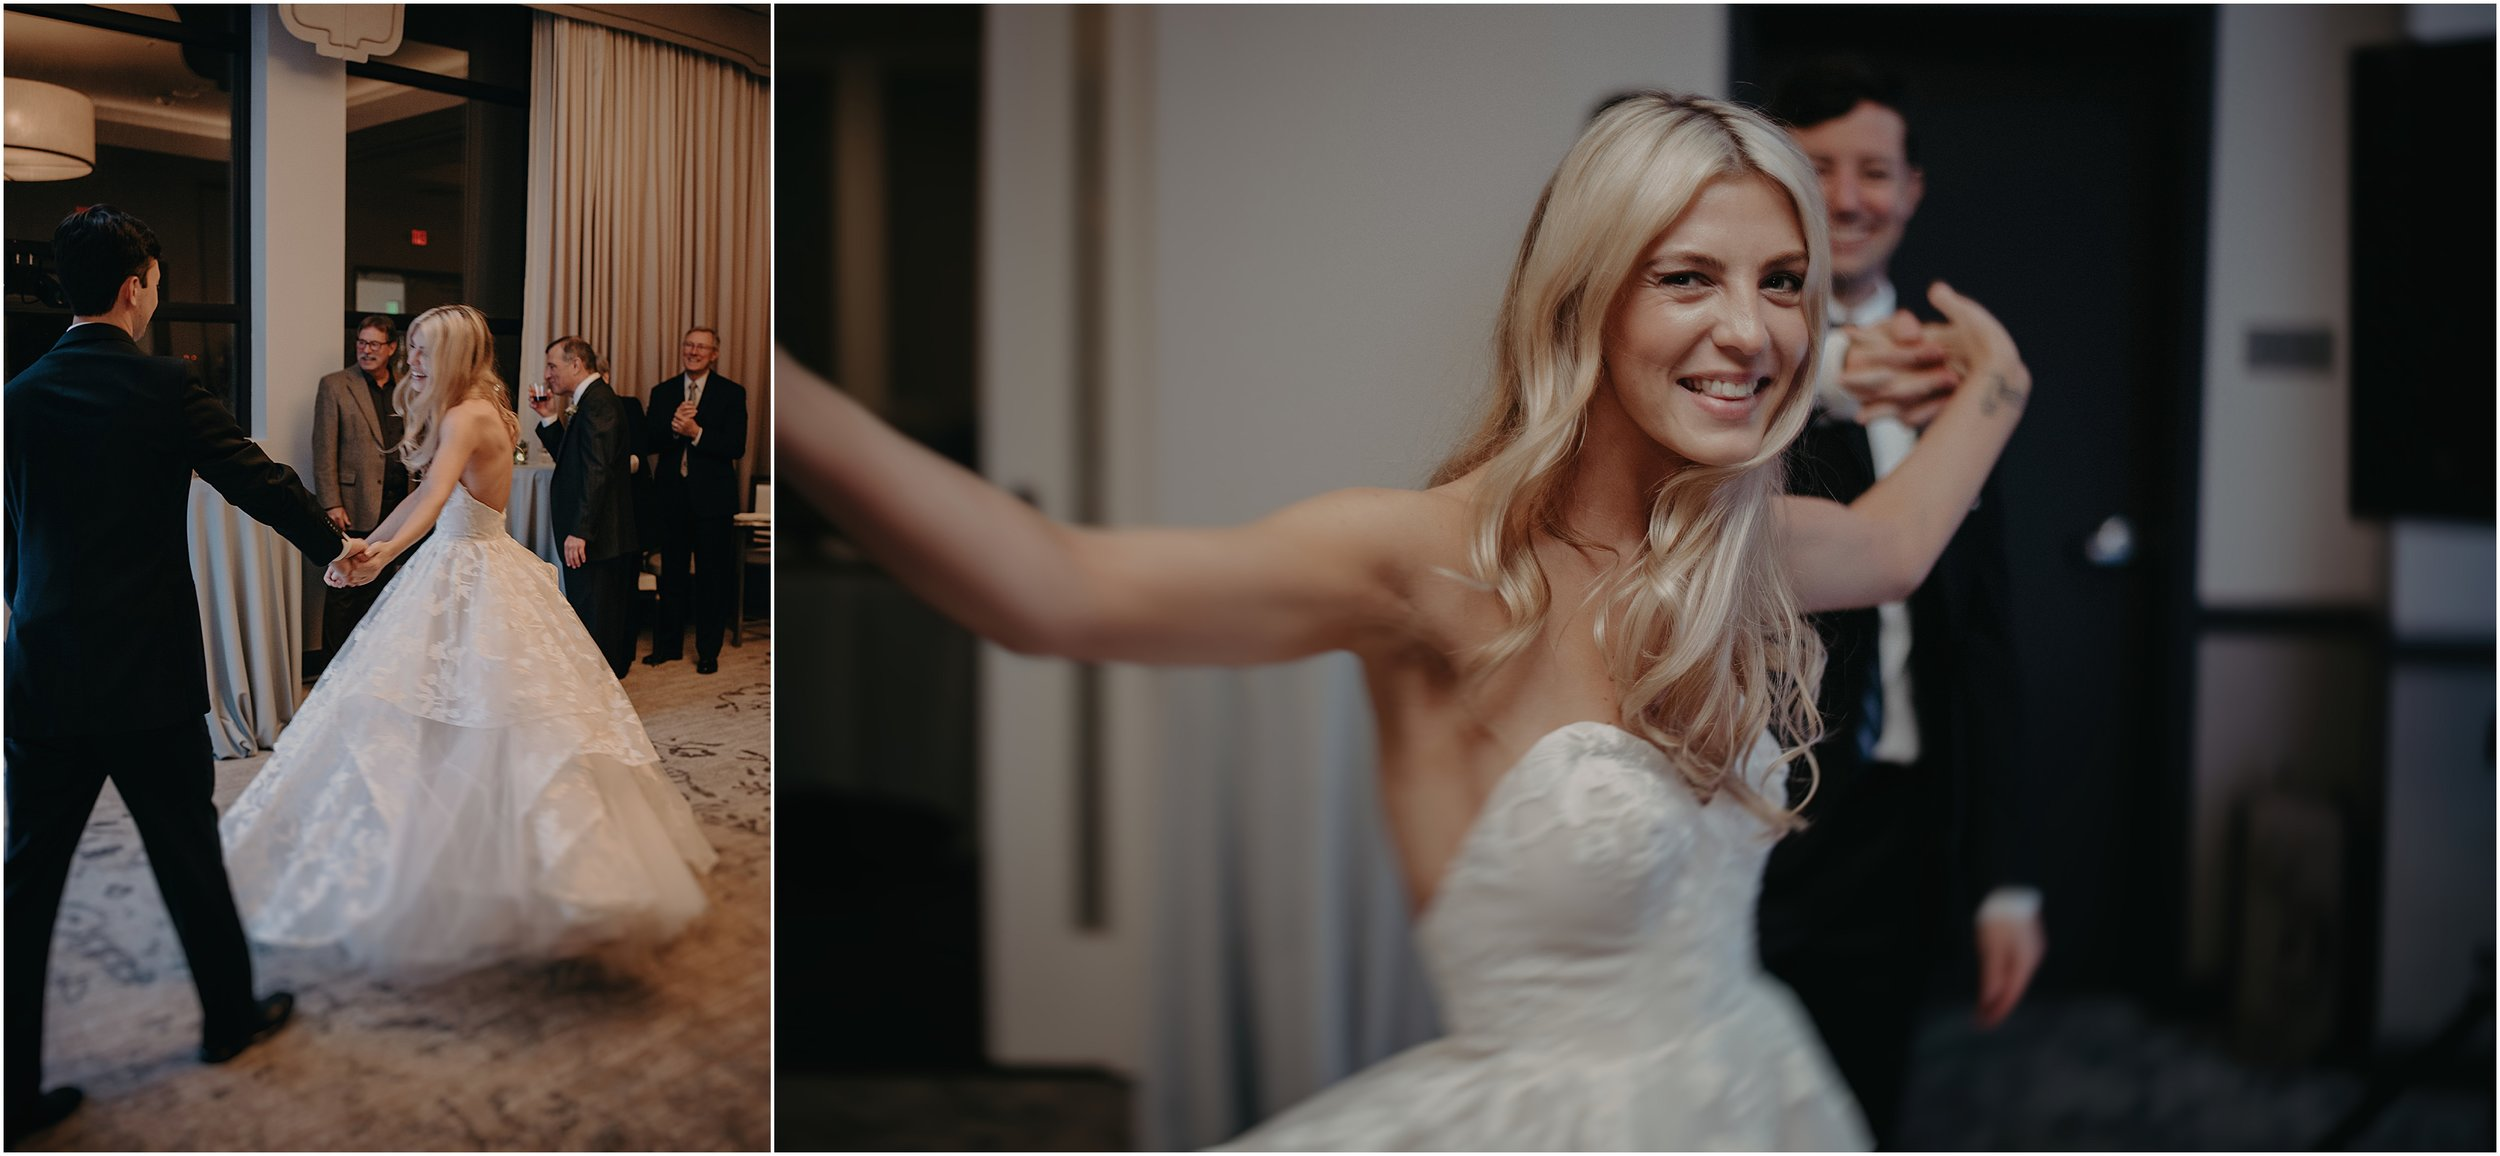 Twirling into the reception together as husband and wife